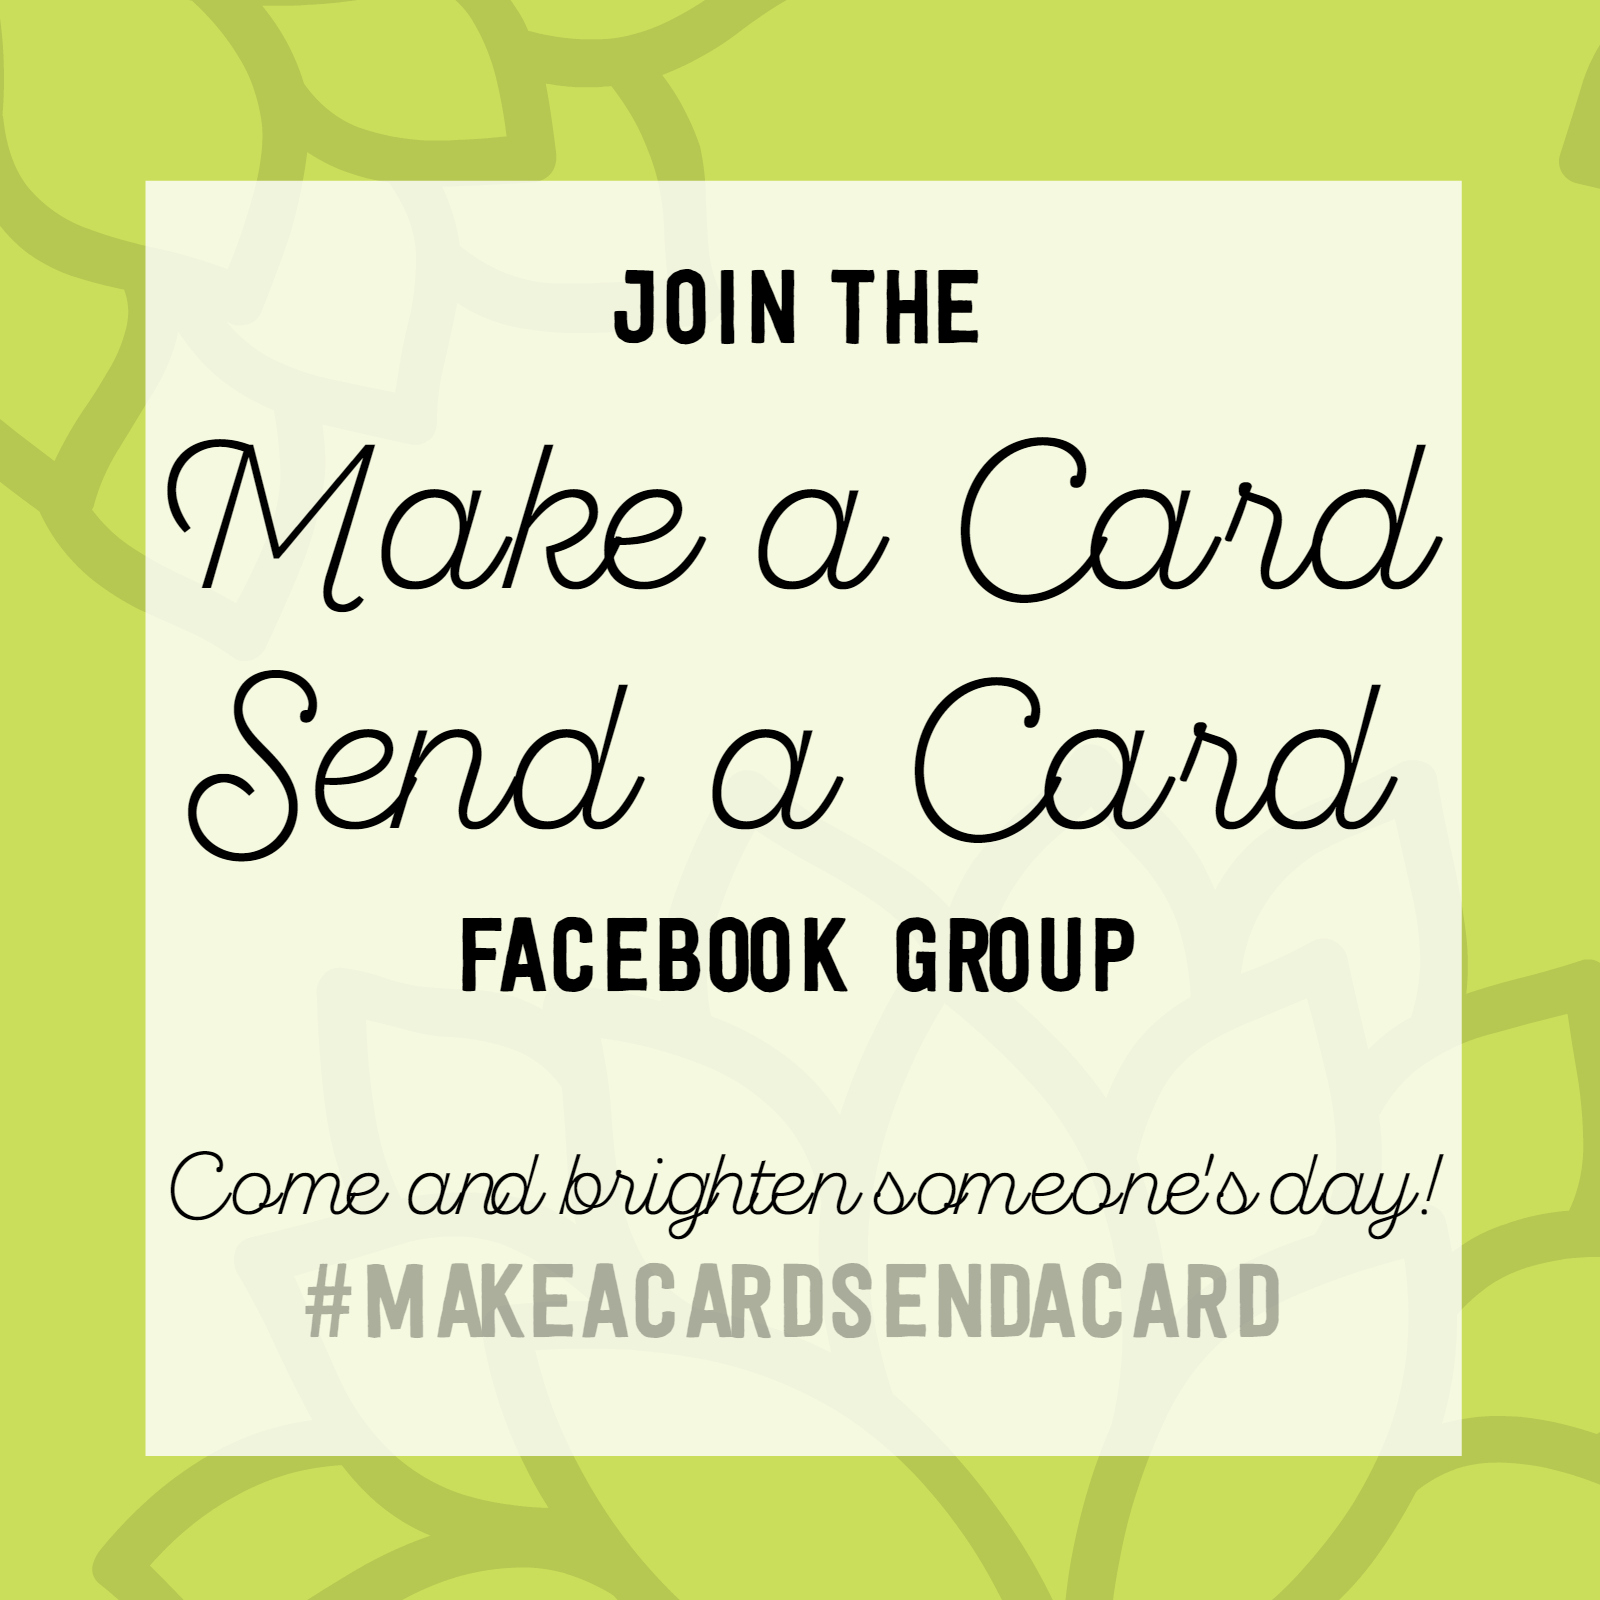 Join the Make a Card Send a Card group